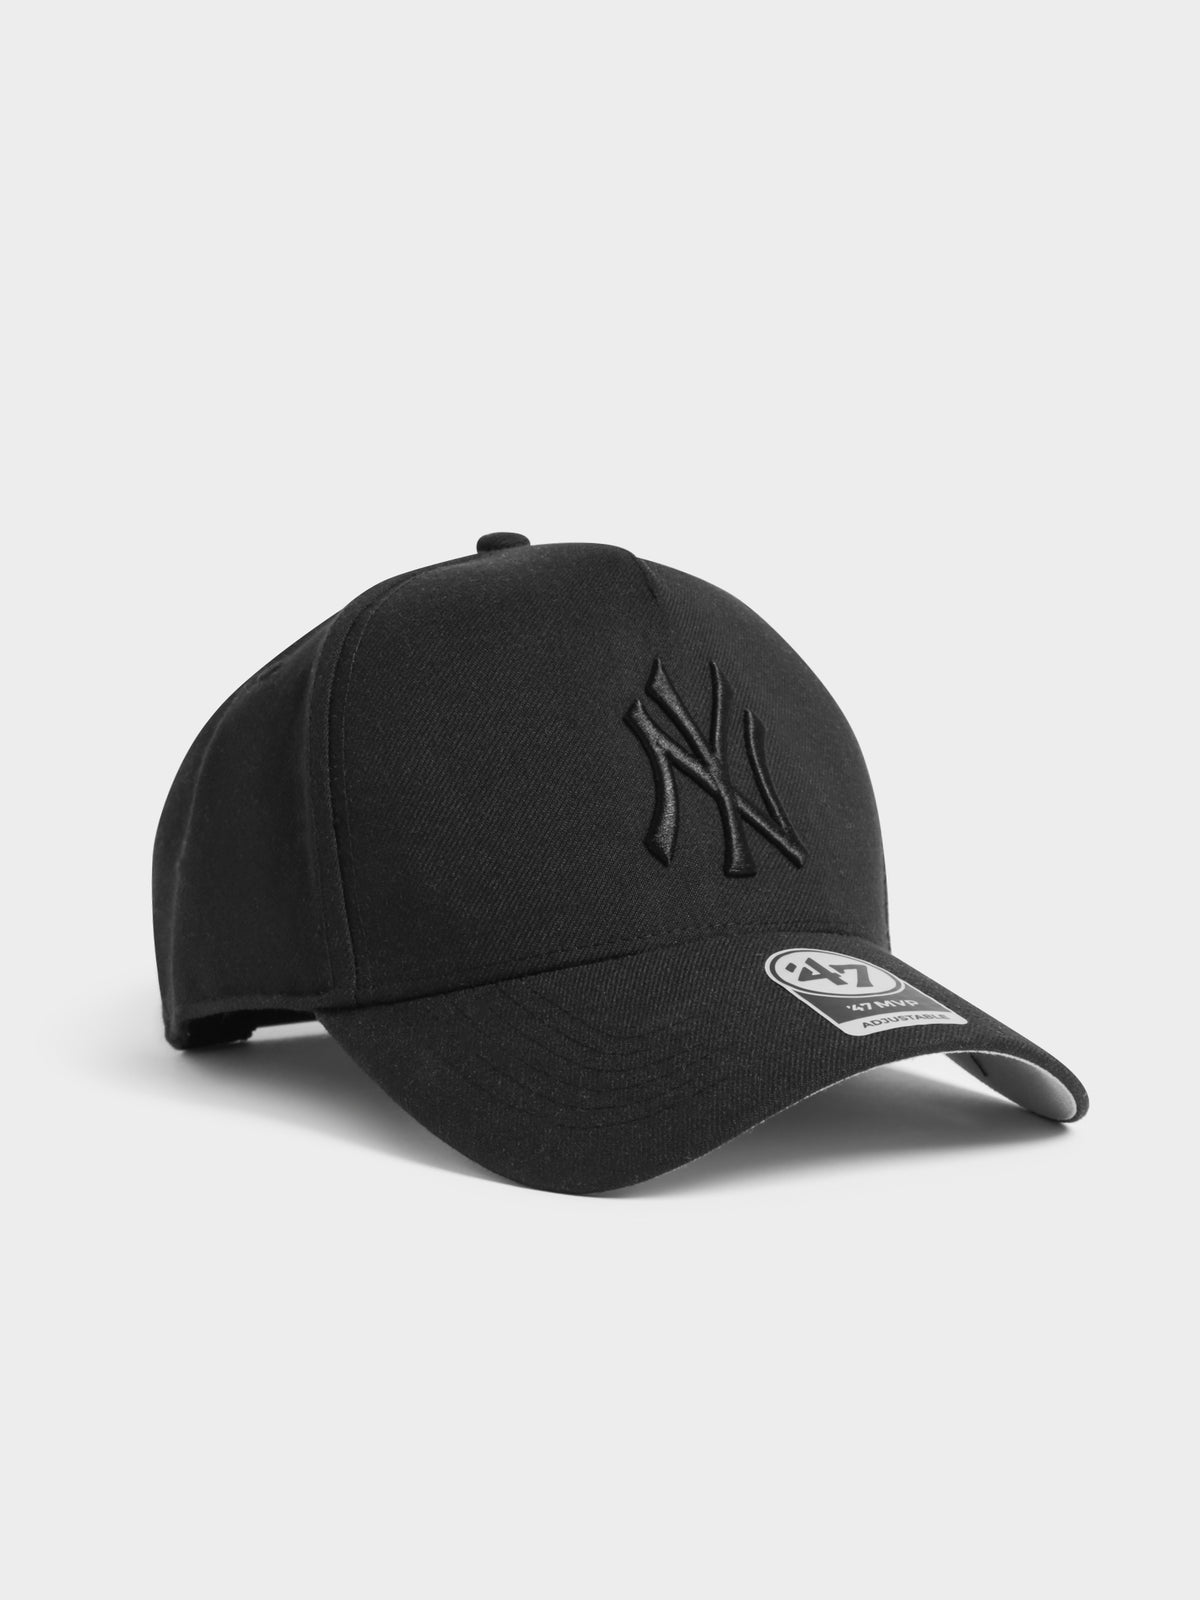 NY 47 MVP Snapback in Black